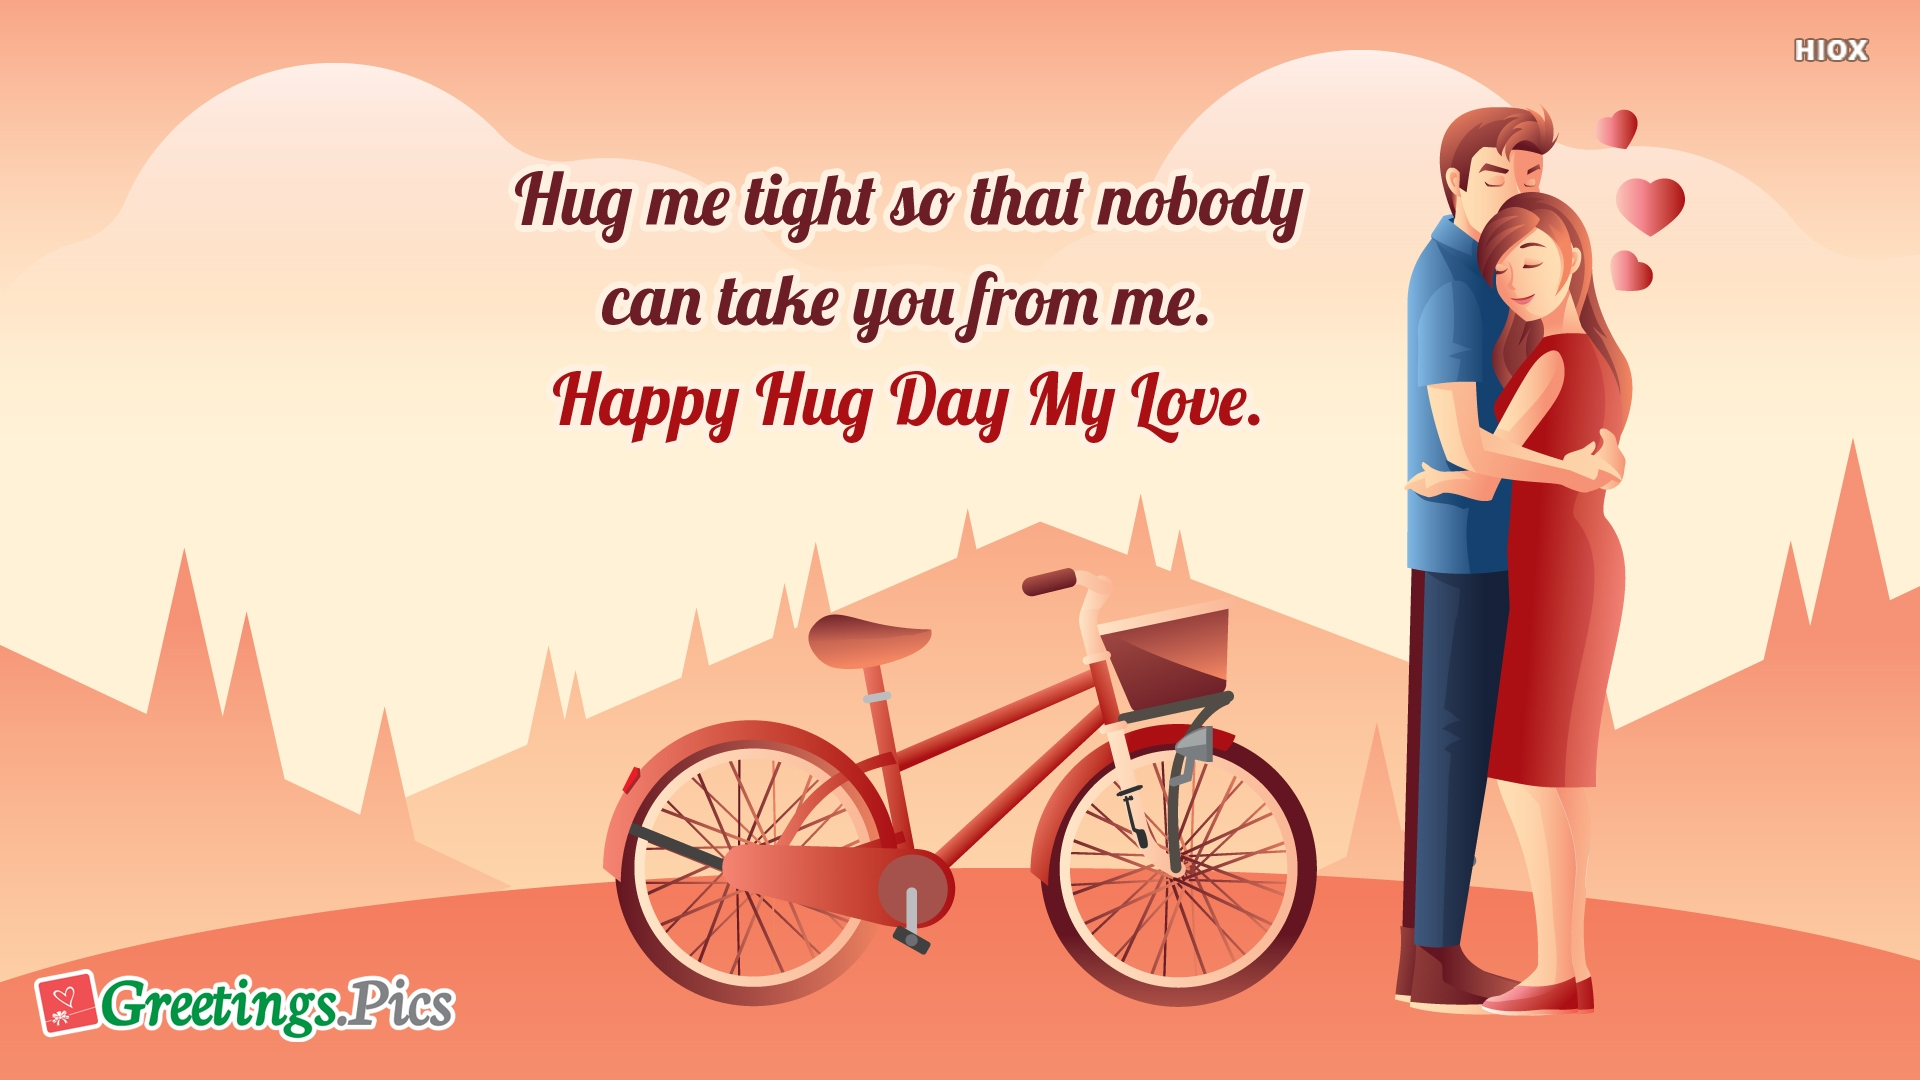 Hug Me Tight So That Nobody Can Take You From Me. Happy Hug Day